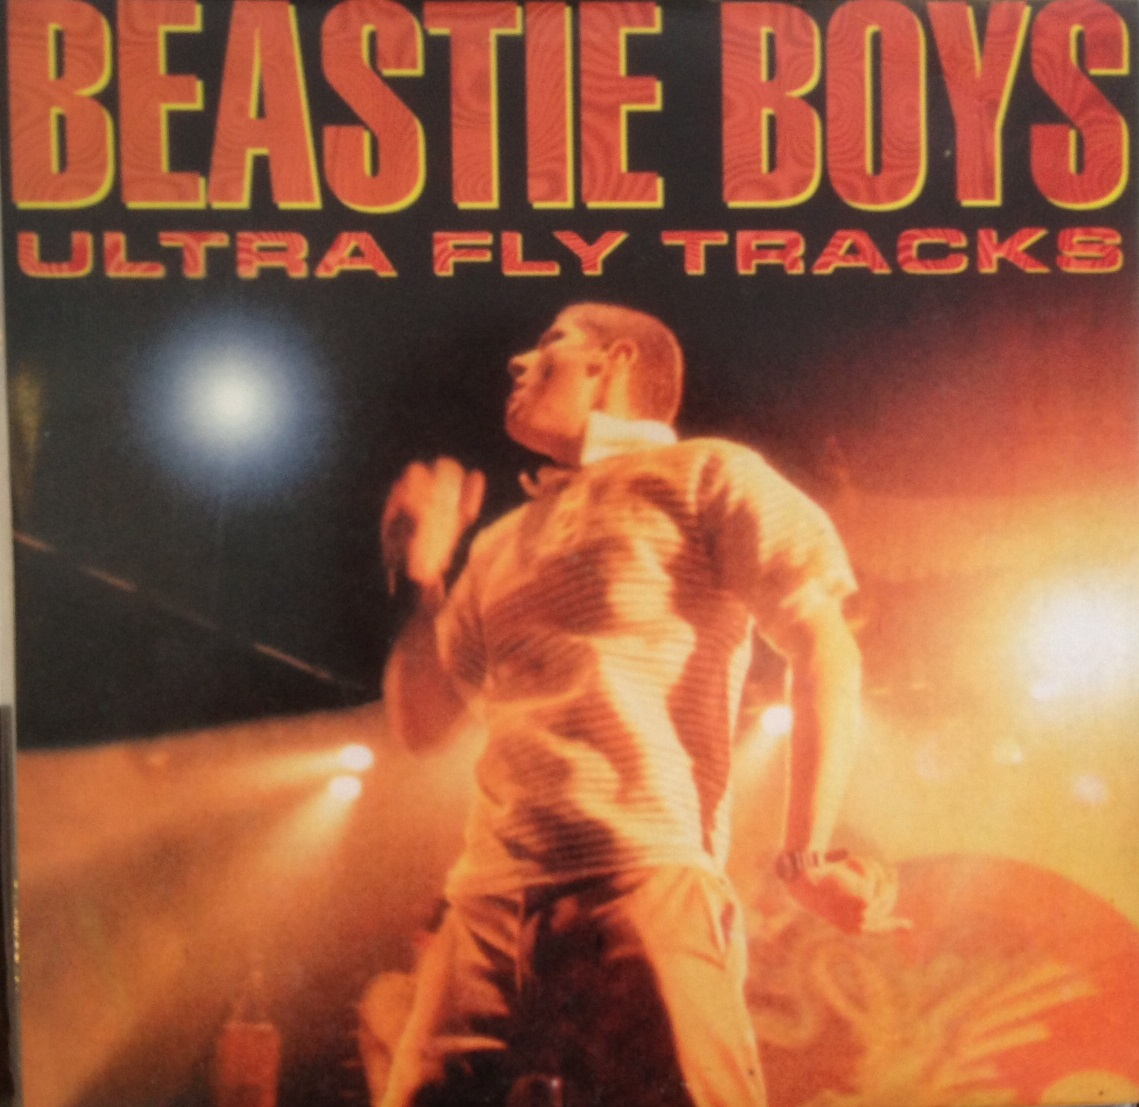 BEASTIE BOYS / ULTRA FLY TRACKS